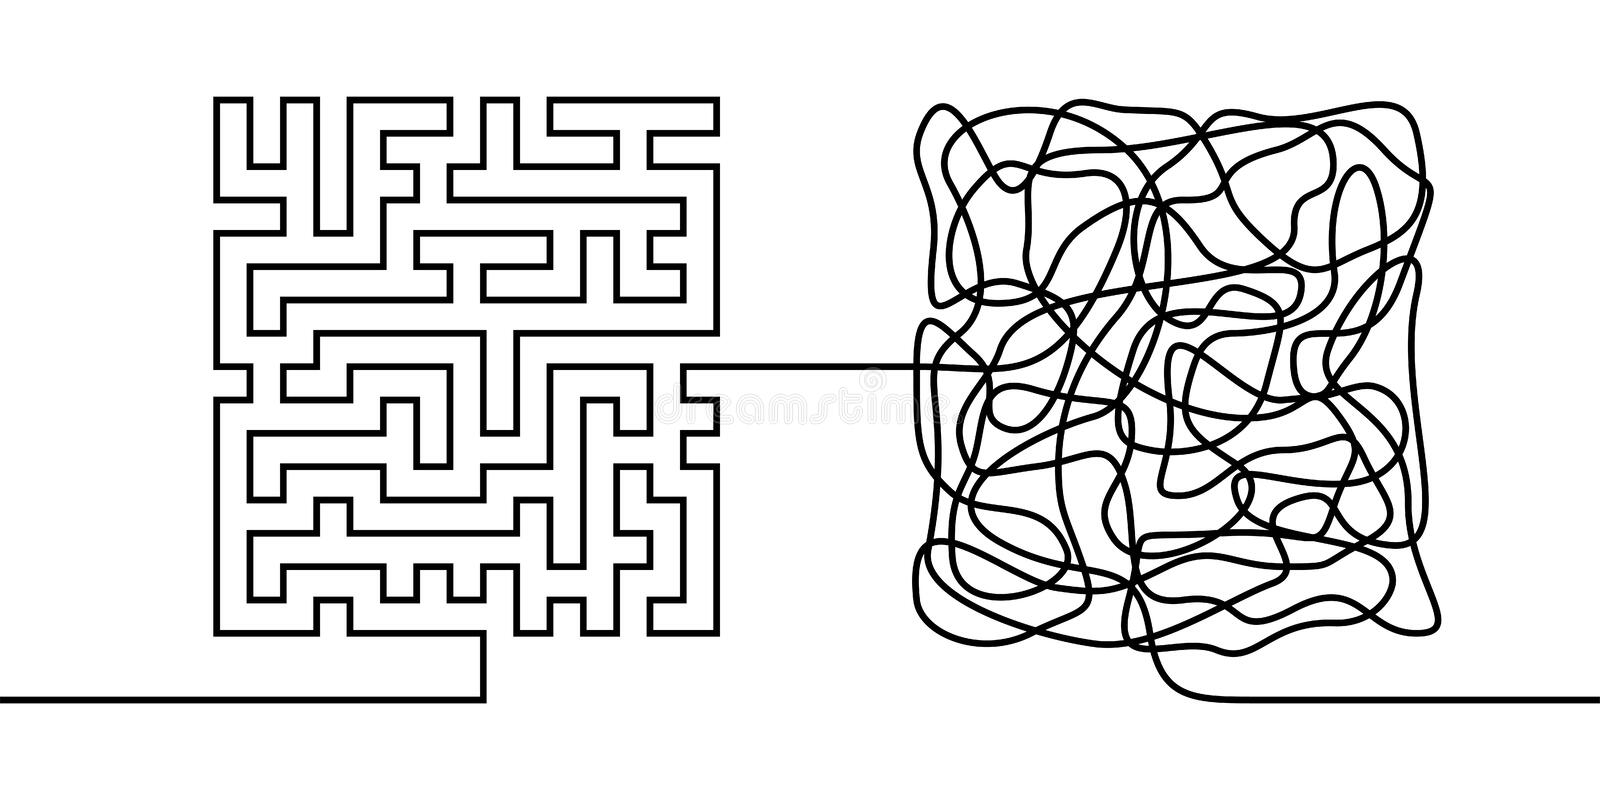 Continuous line drawing a chaos and order concept. Chaos theory metaphor minimalist single line vector illustration stock illustration